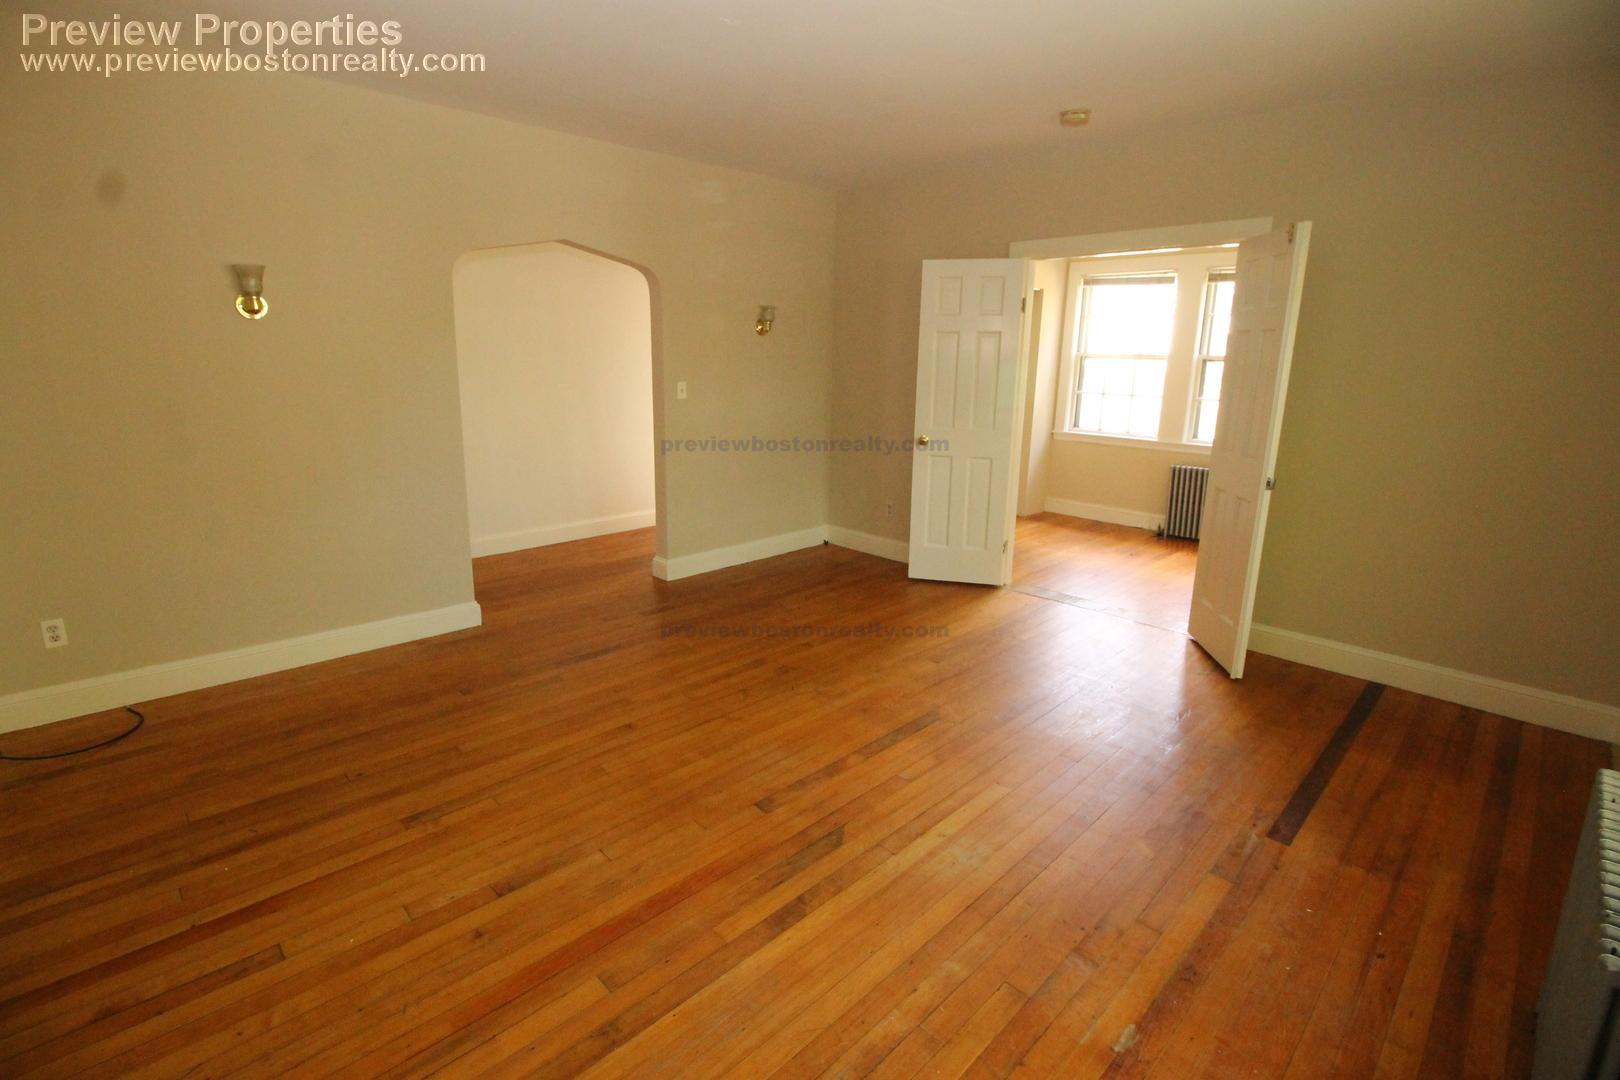 4 - 3 Bd, Parking Included